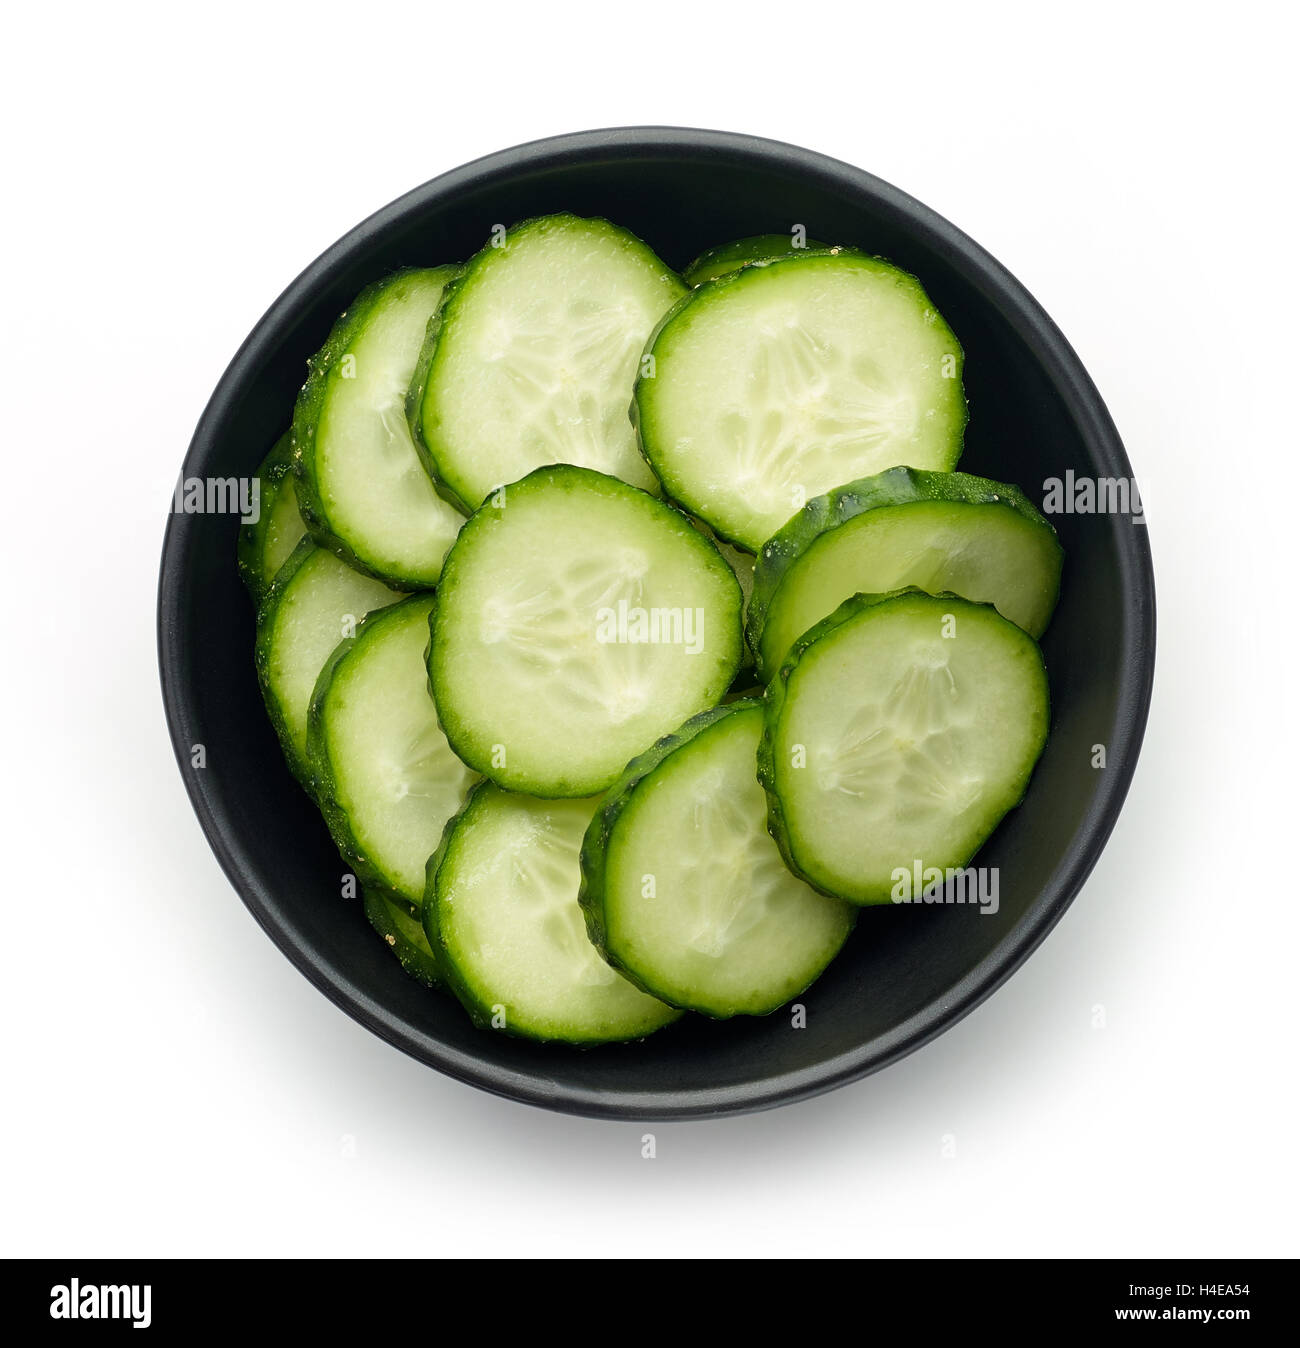 Black bowl of fresh cucumber slices isolated on white background, top view - Stock Image